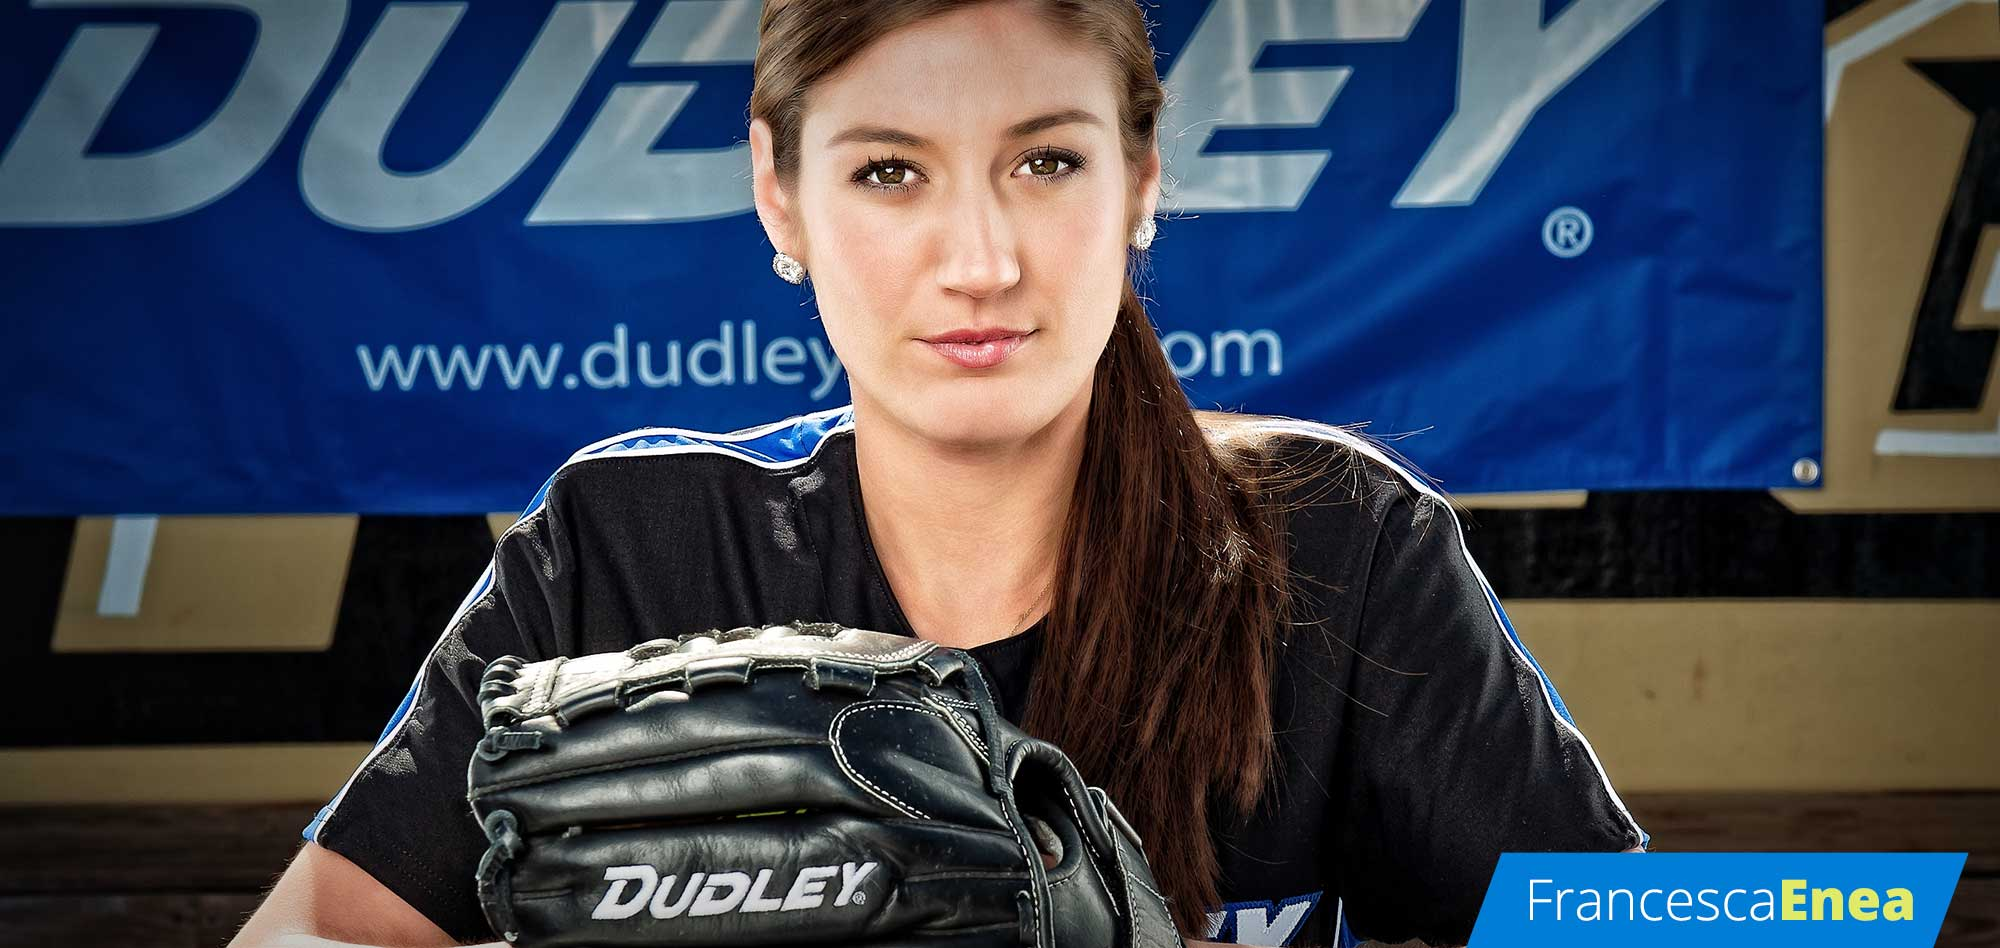 Francesca Enea Softball Player and Dudley® Sports Pro Team Member